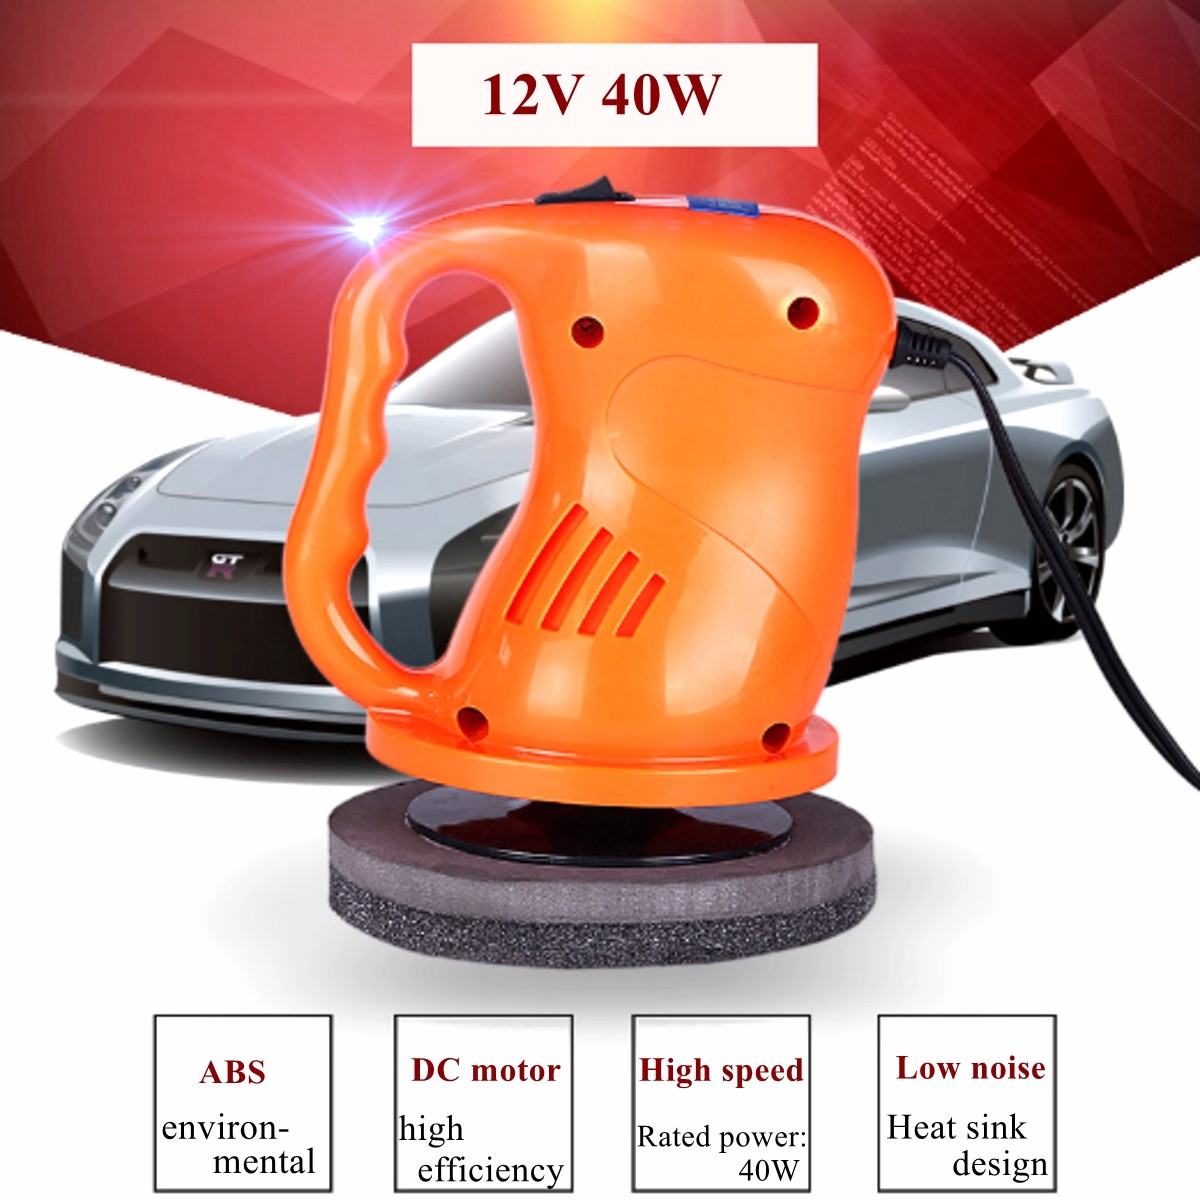 12V 36W Portable Auto Car Polishing Buffing Waxing Machine ABS Waxer/Polisher for Home and Outdoor